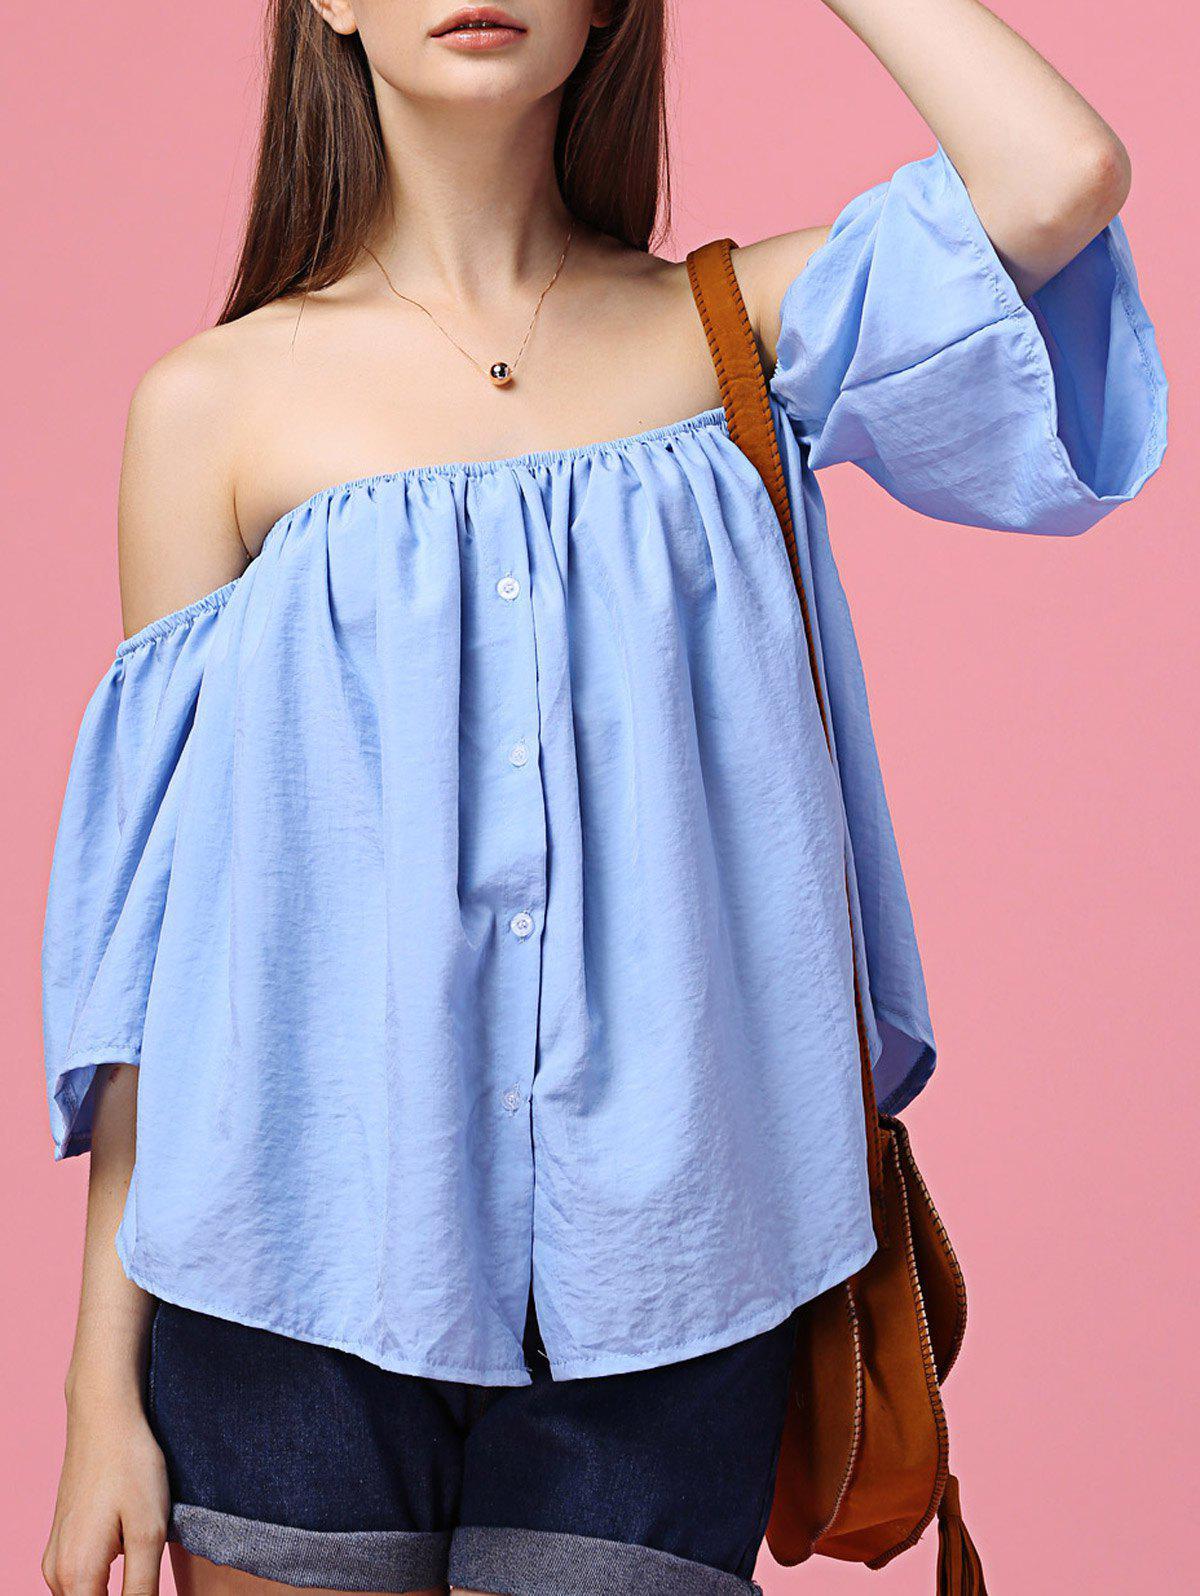 Sweet Off-The-Shoulder Flare Sleeves Blue Shirt For Women